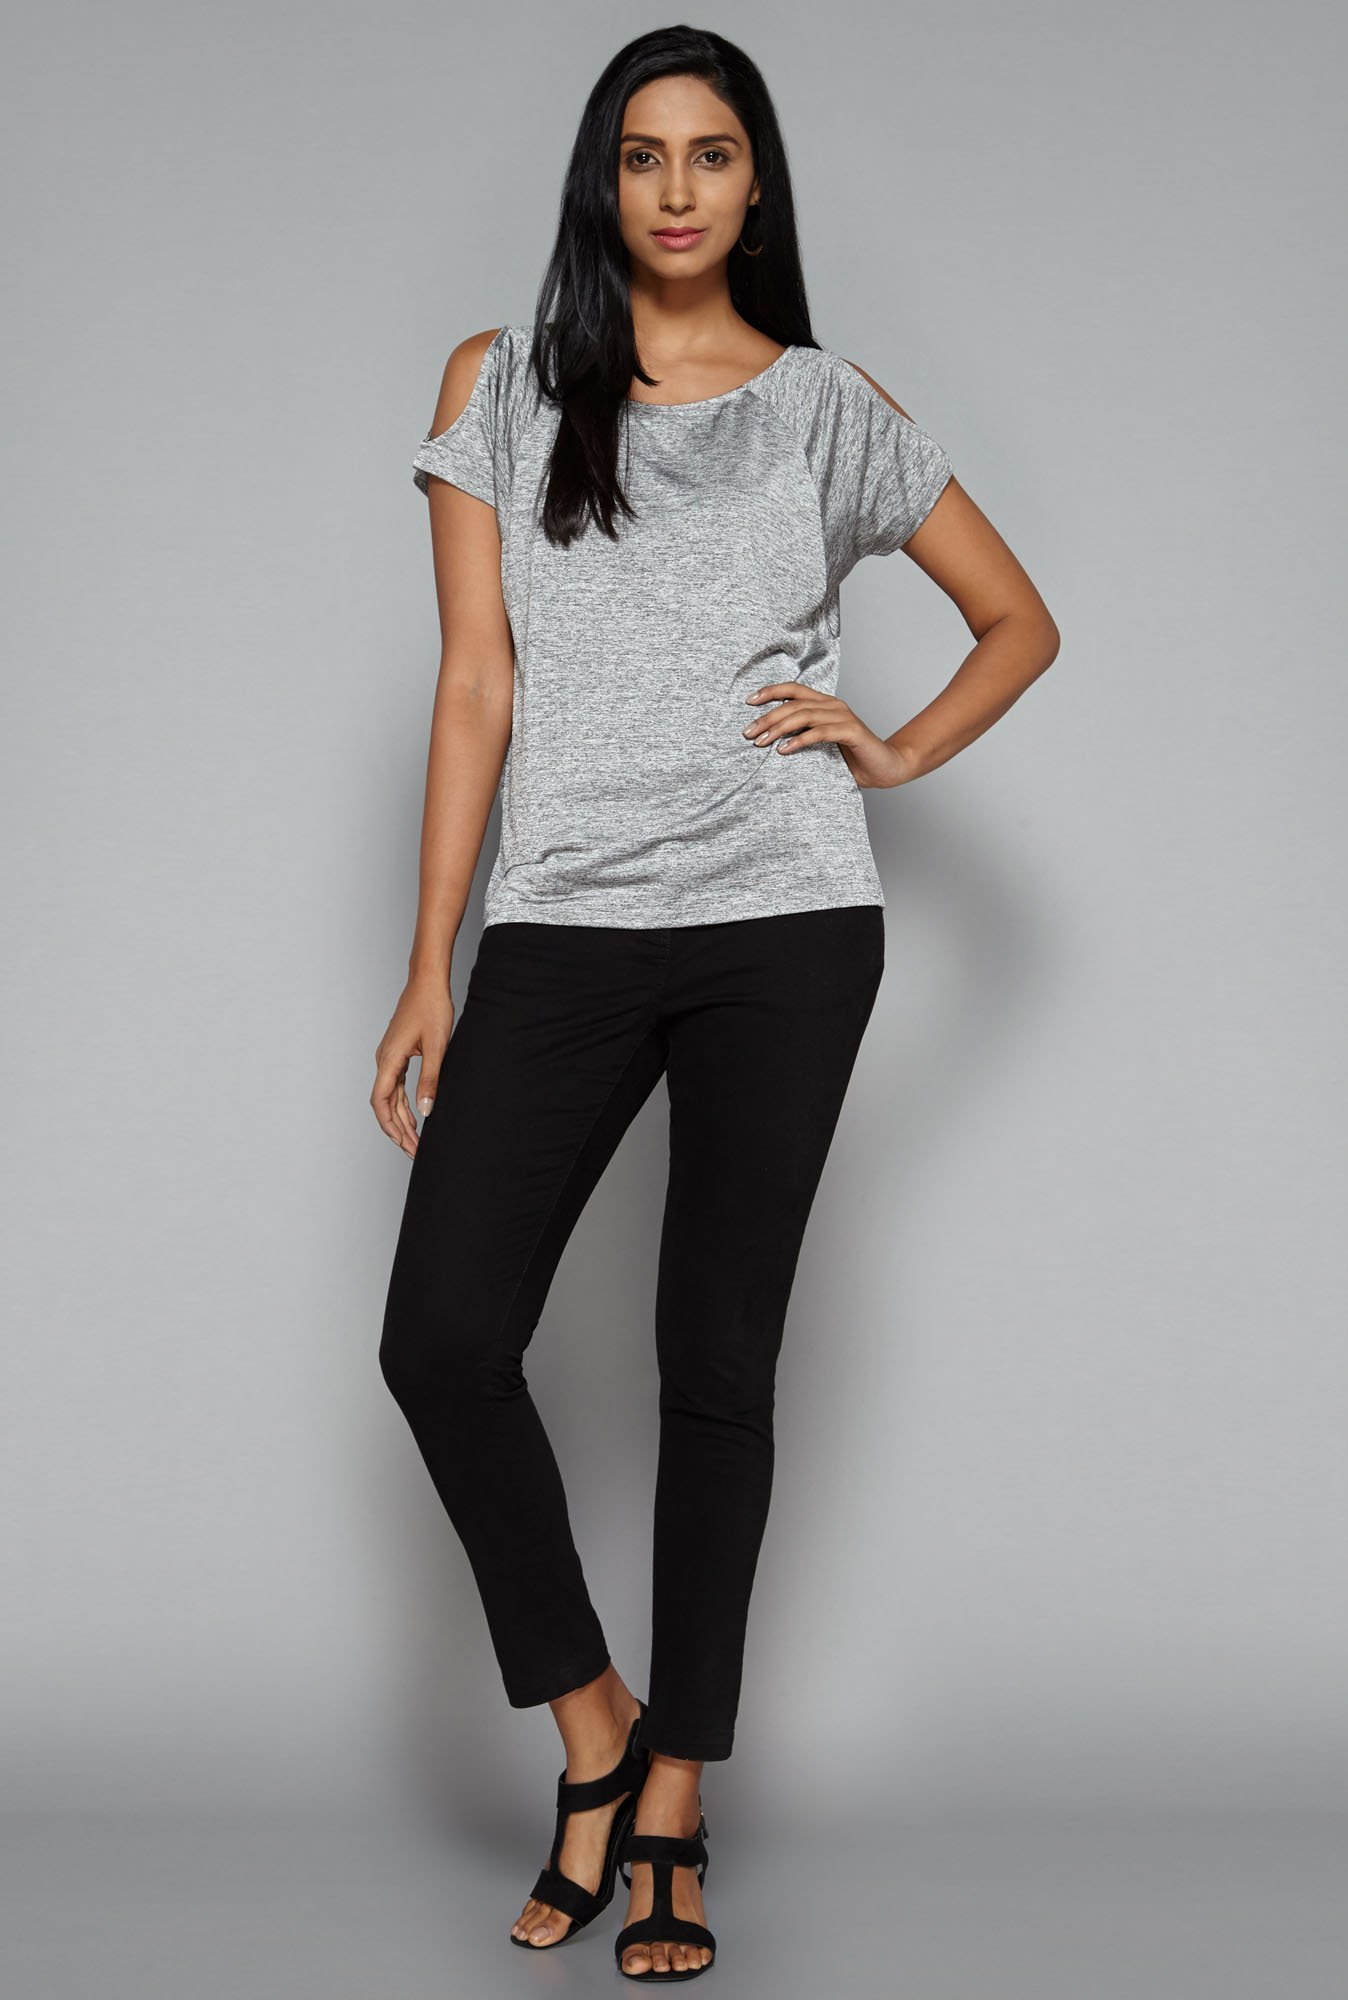 LOV by Westside Grey Goldy Top